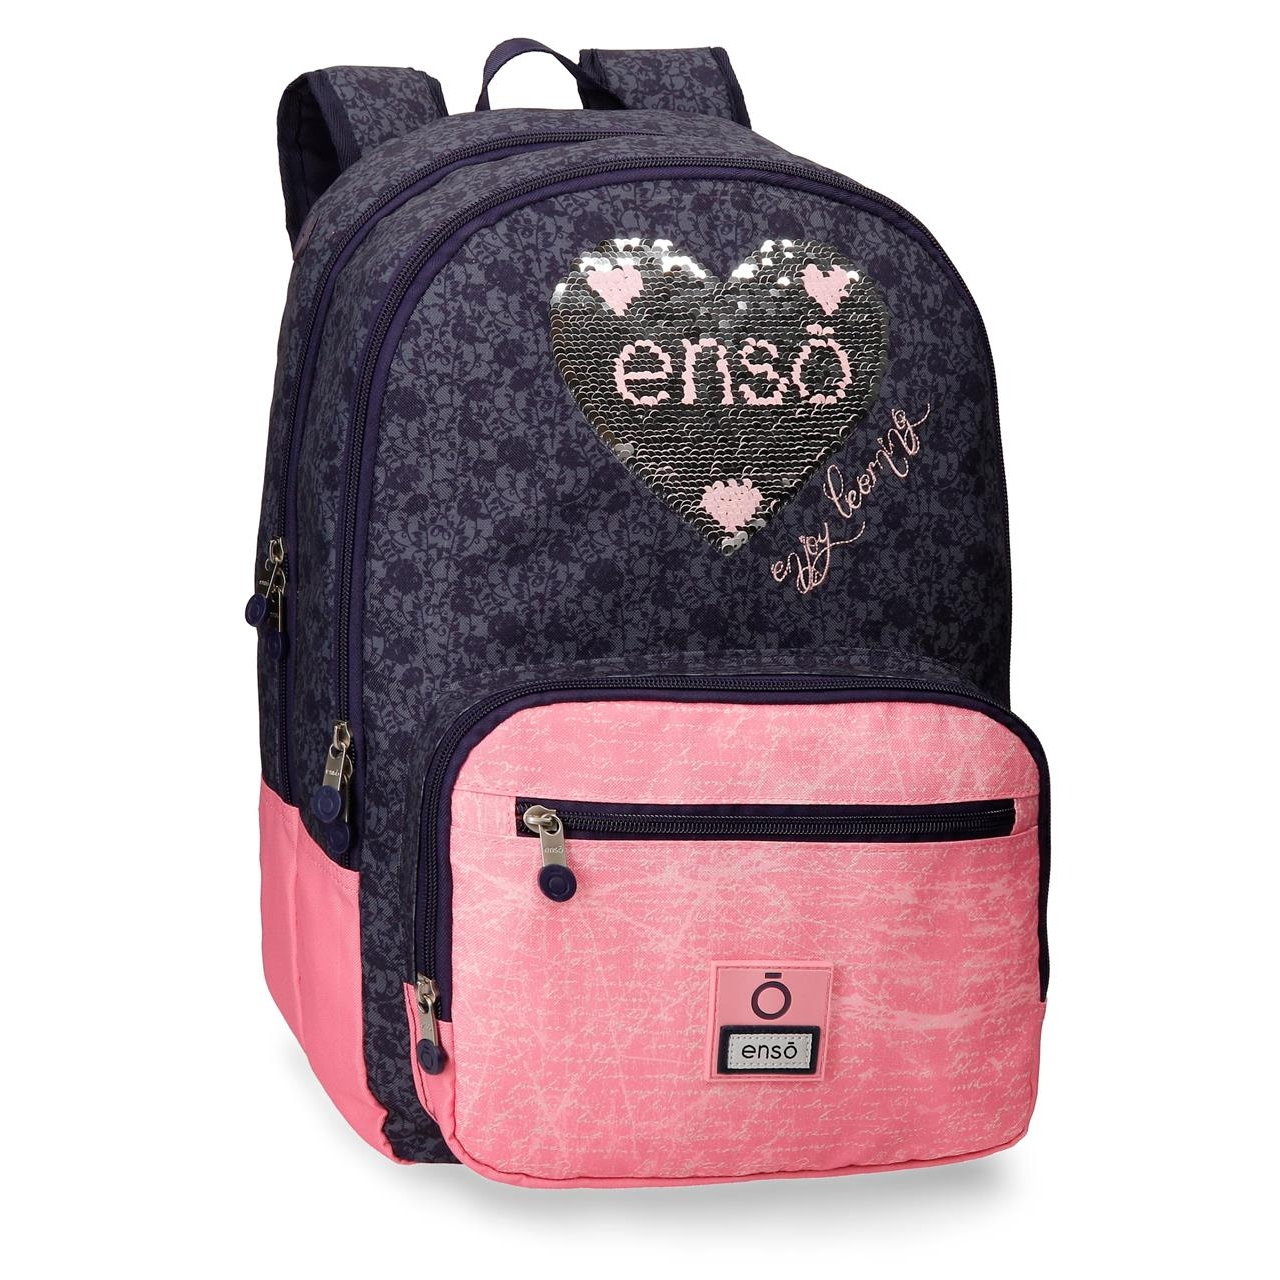 Mochila Doble Compartimento 44cm Enso Learn adaptable a carro